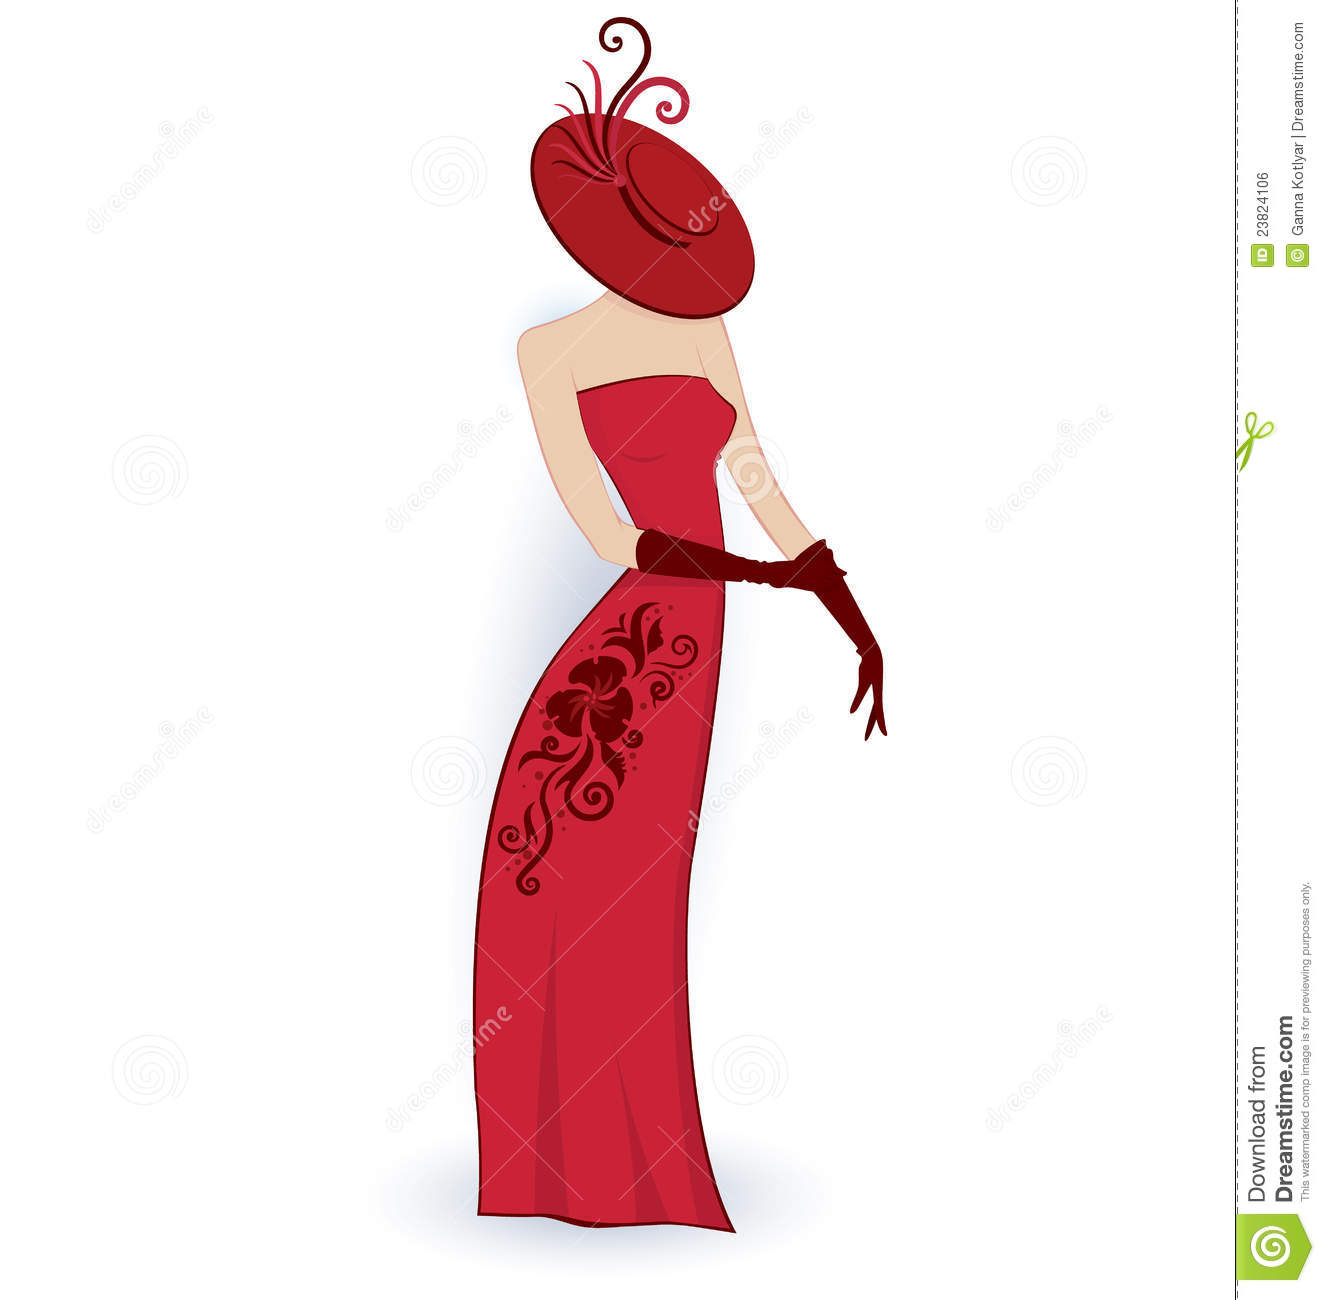 Classy lady clipart.